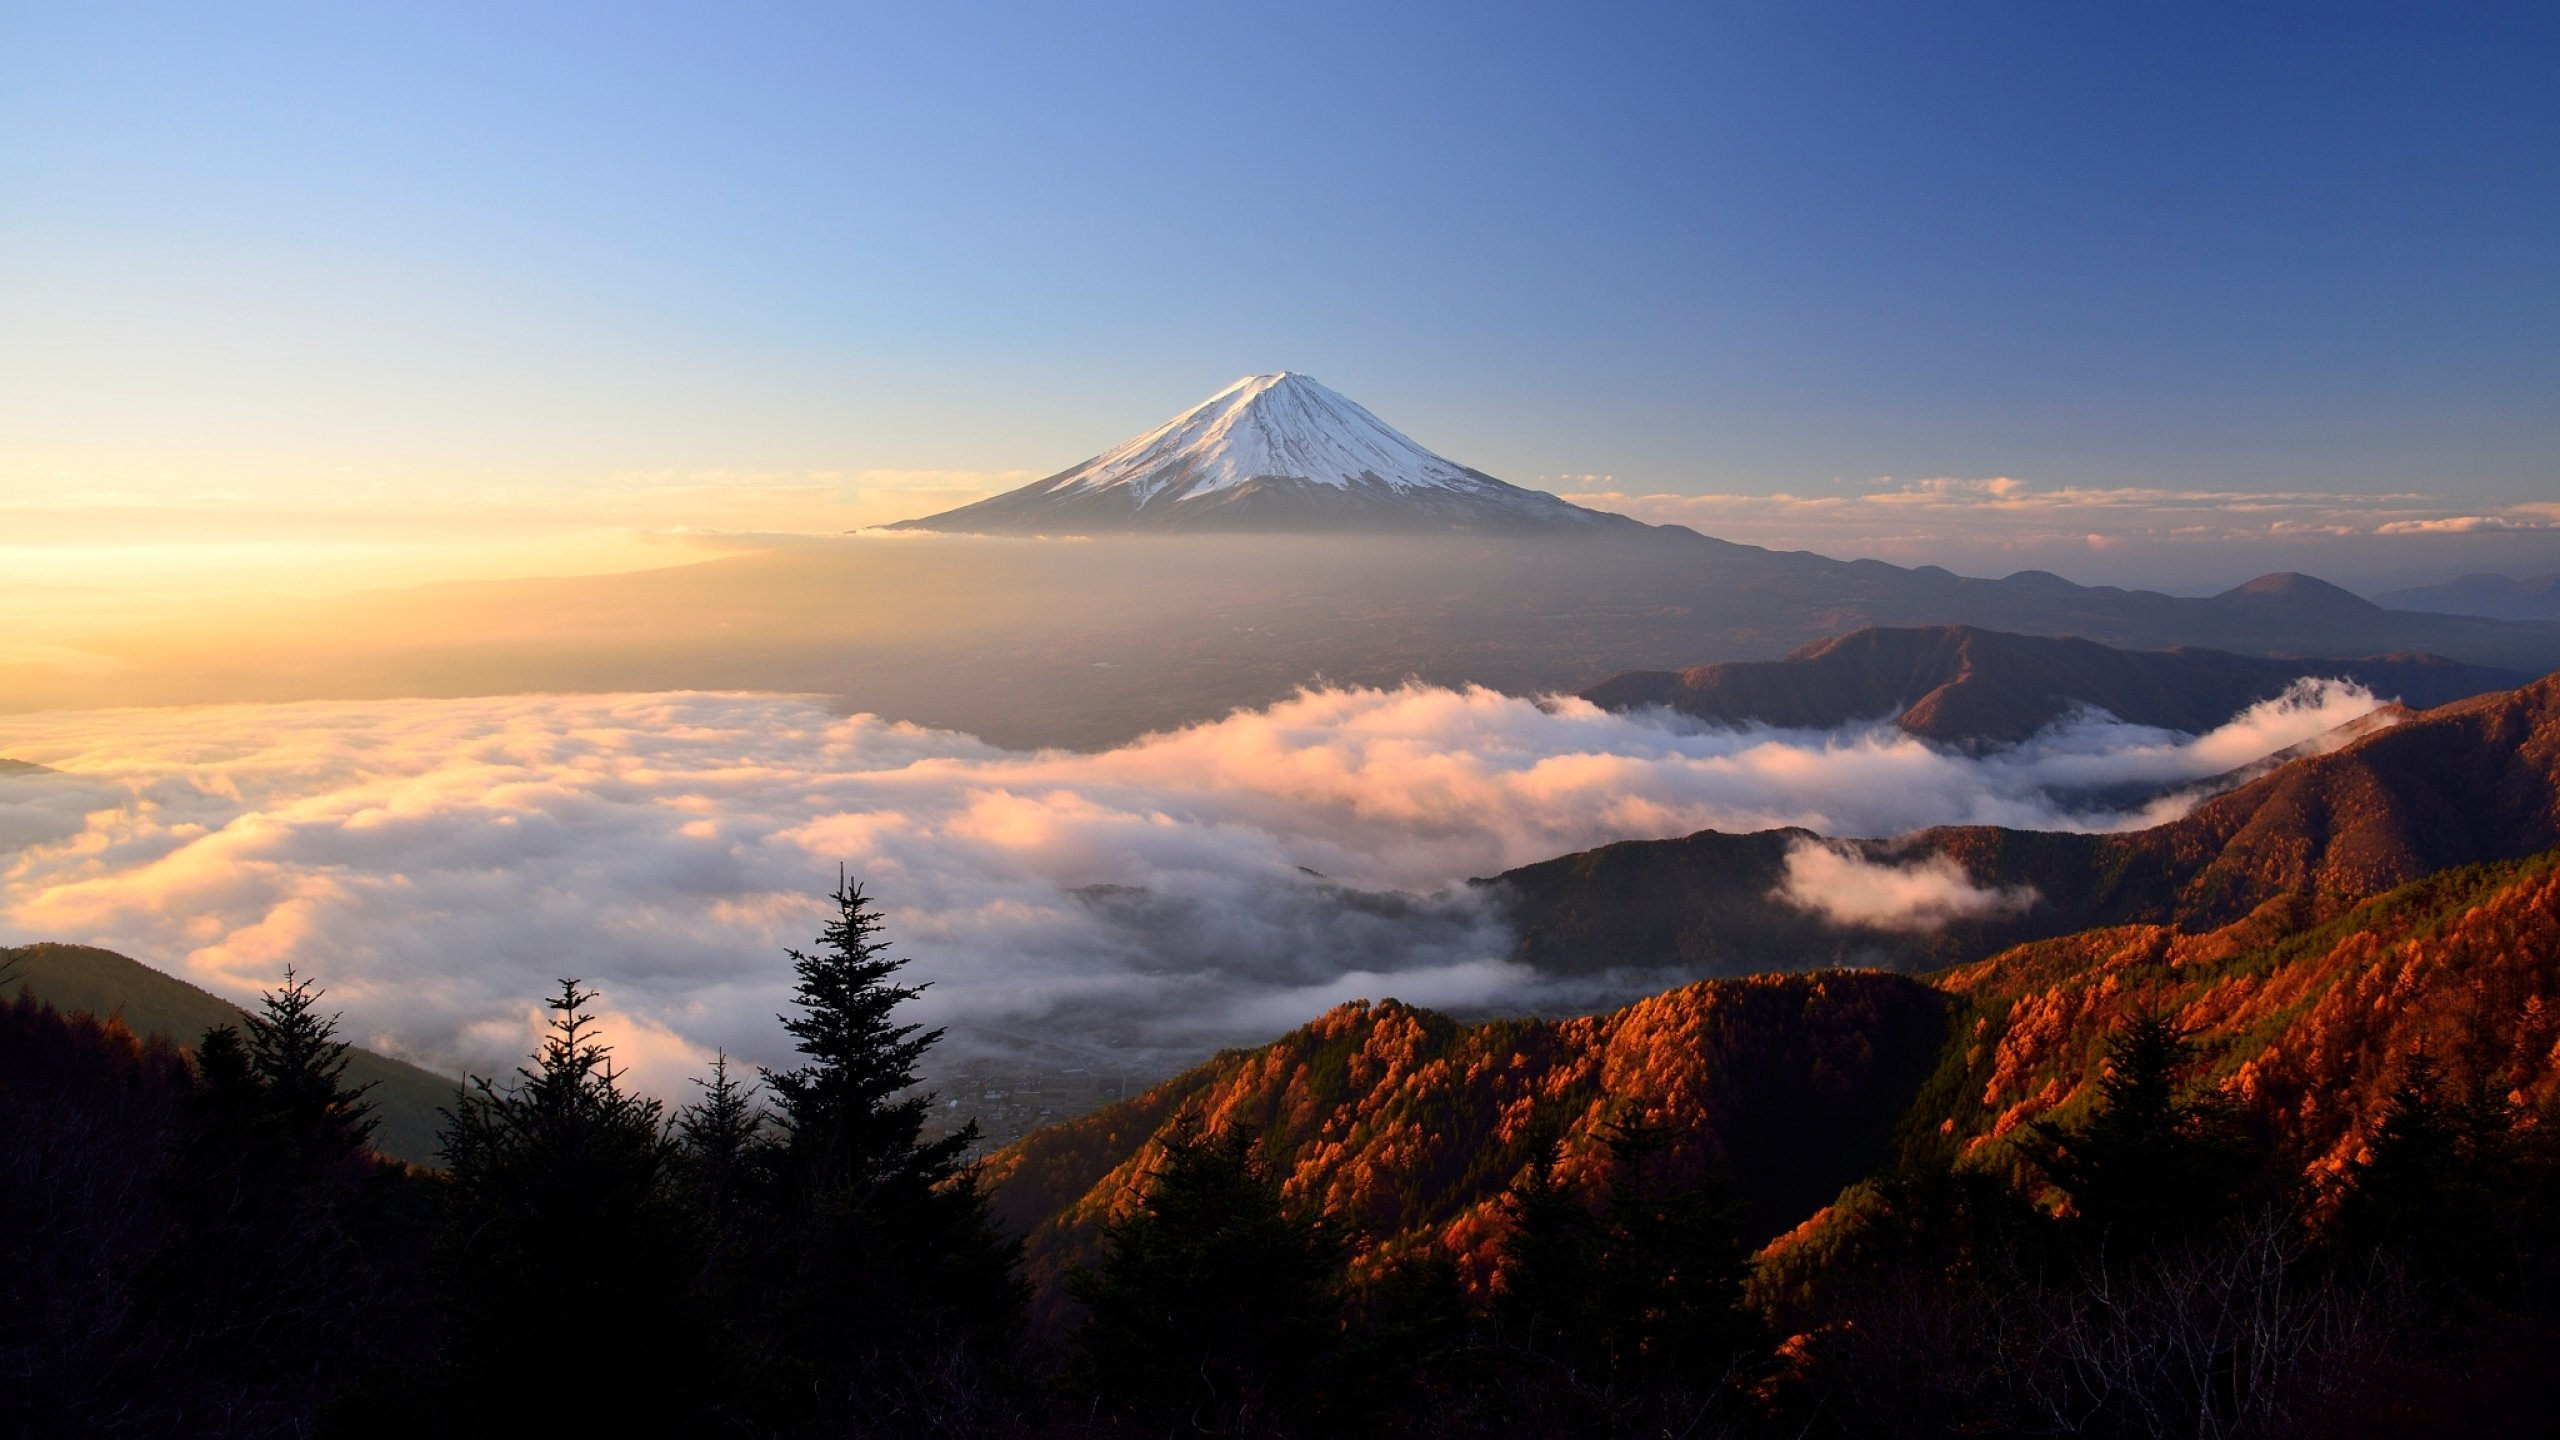 15 HD Mount Fuji Japan Wallpapers   HDWallSourcecom 2560x1440